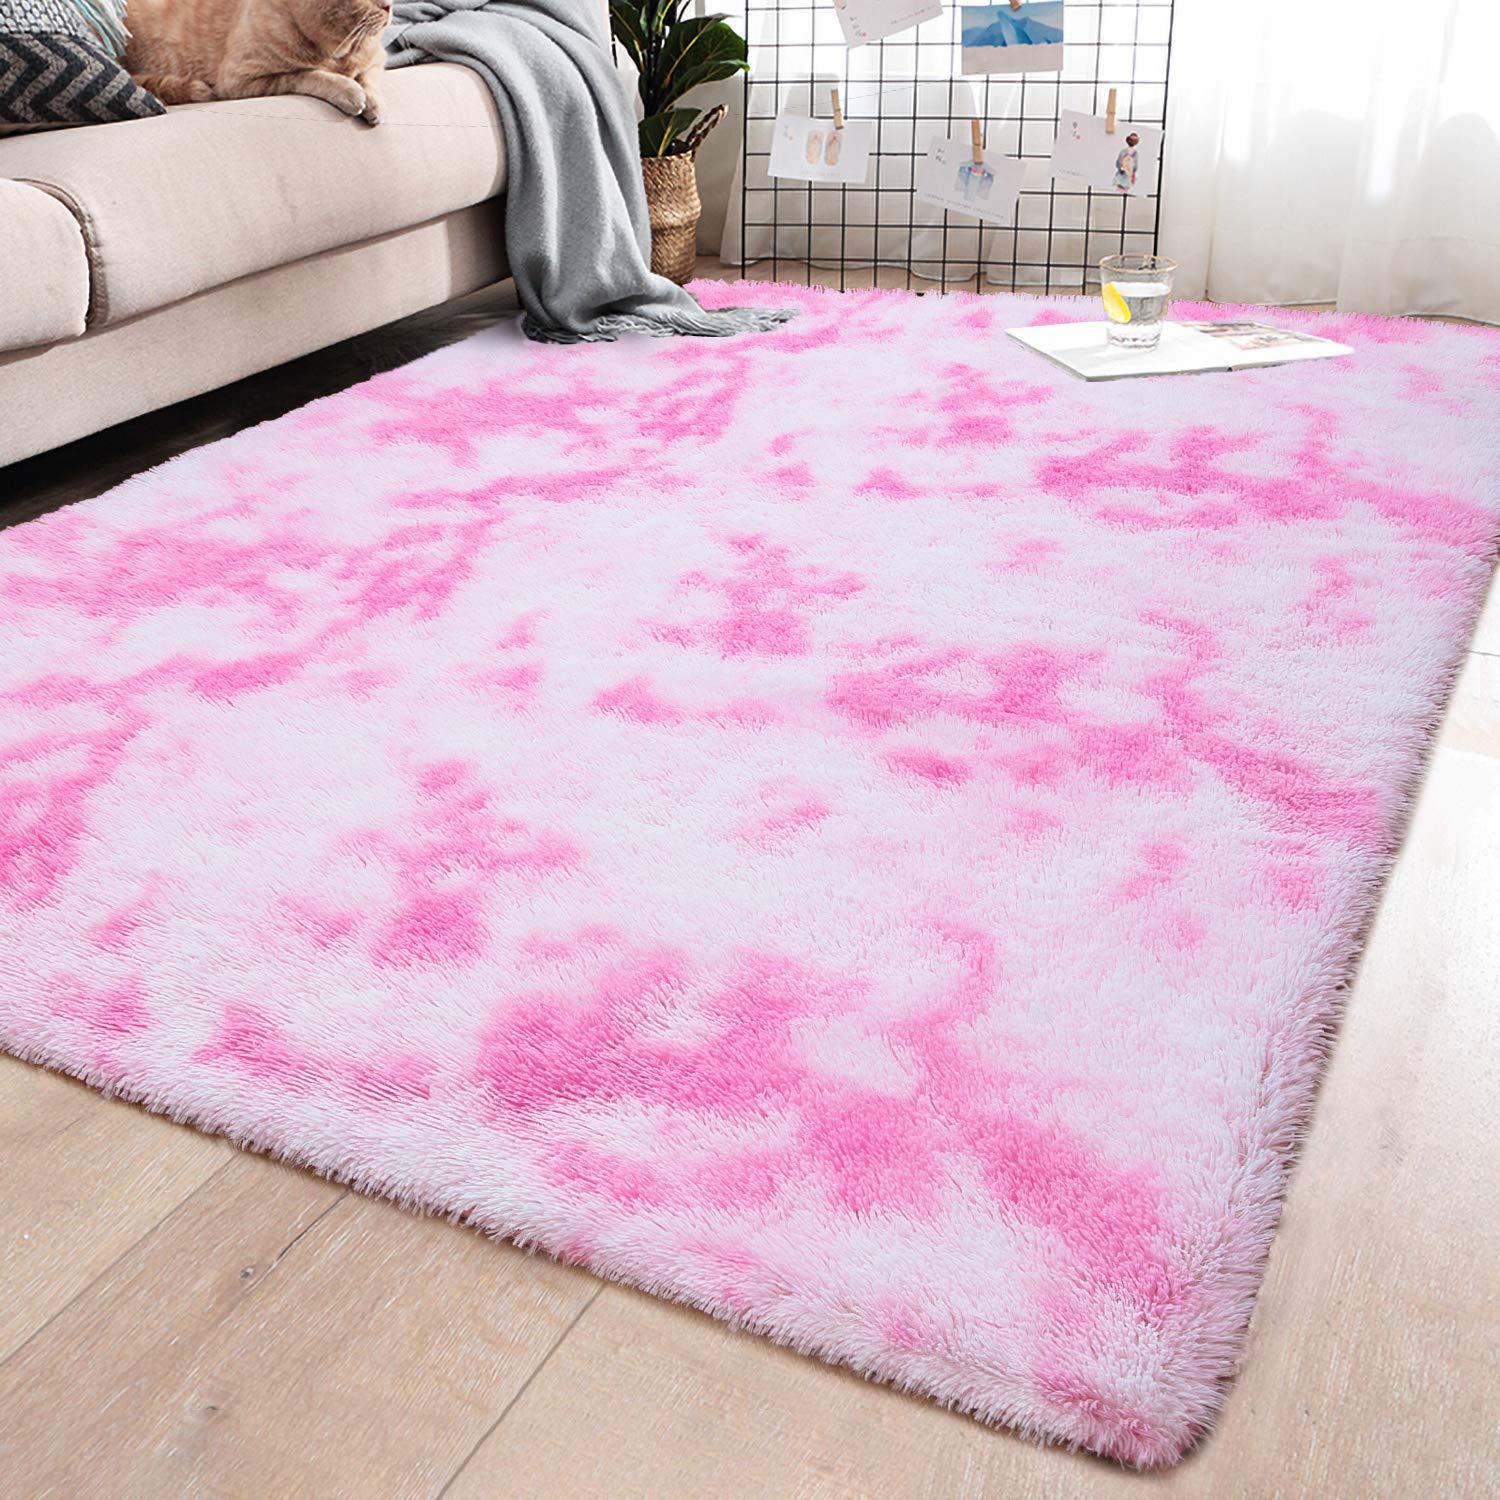 YJ.GWL Soft Indoor Large Modern Area Rugs Shaggy Fluffy Carpets Suitable for Living Room and Bedroom Nursery Rugs Abstract Accent Home Decor Rugs for Girls and Kids 5x8 Feet Pink